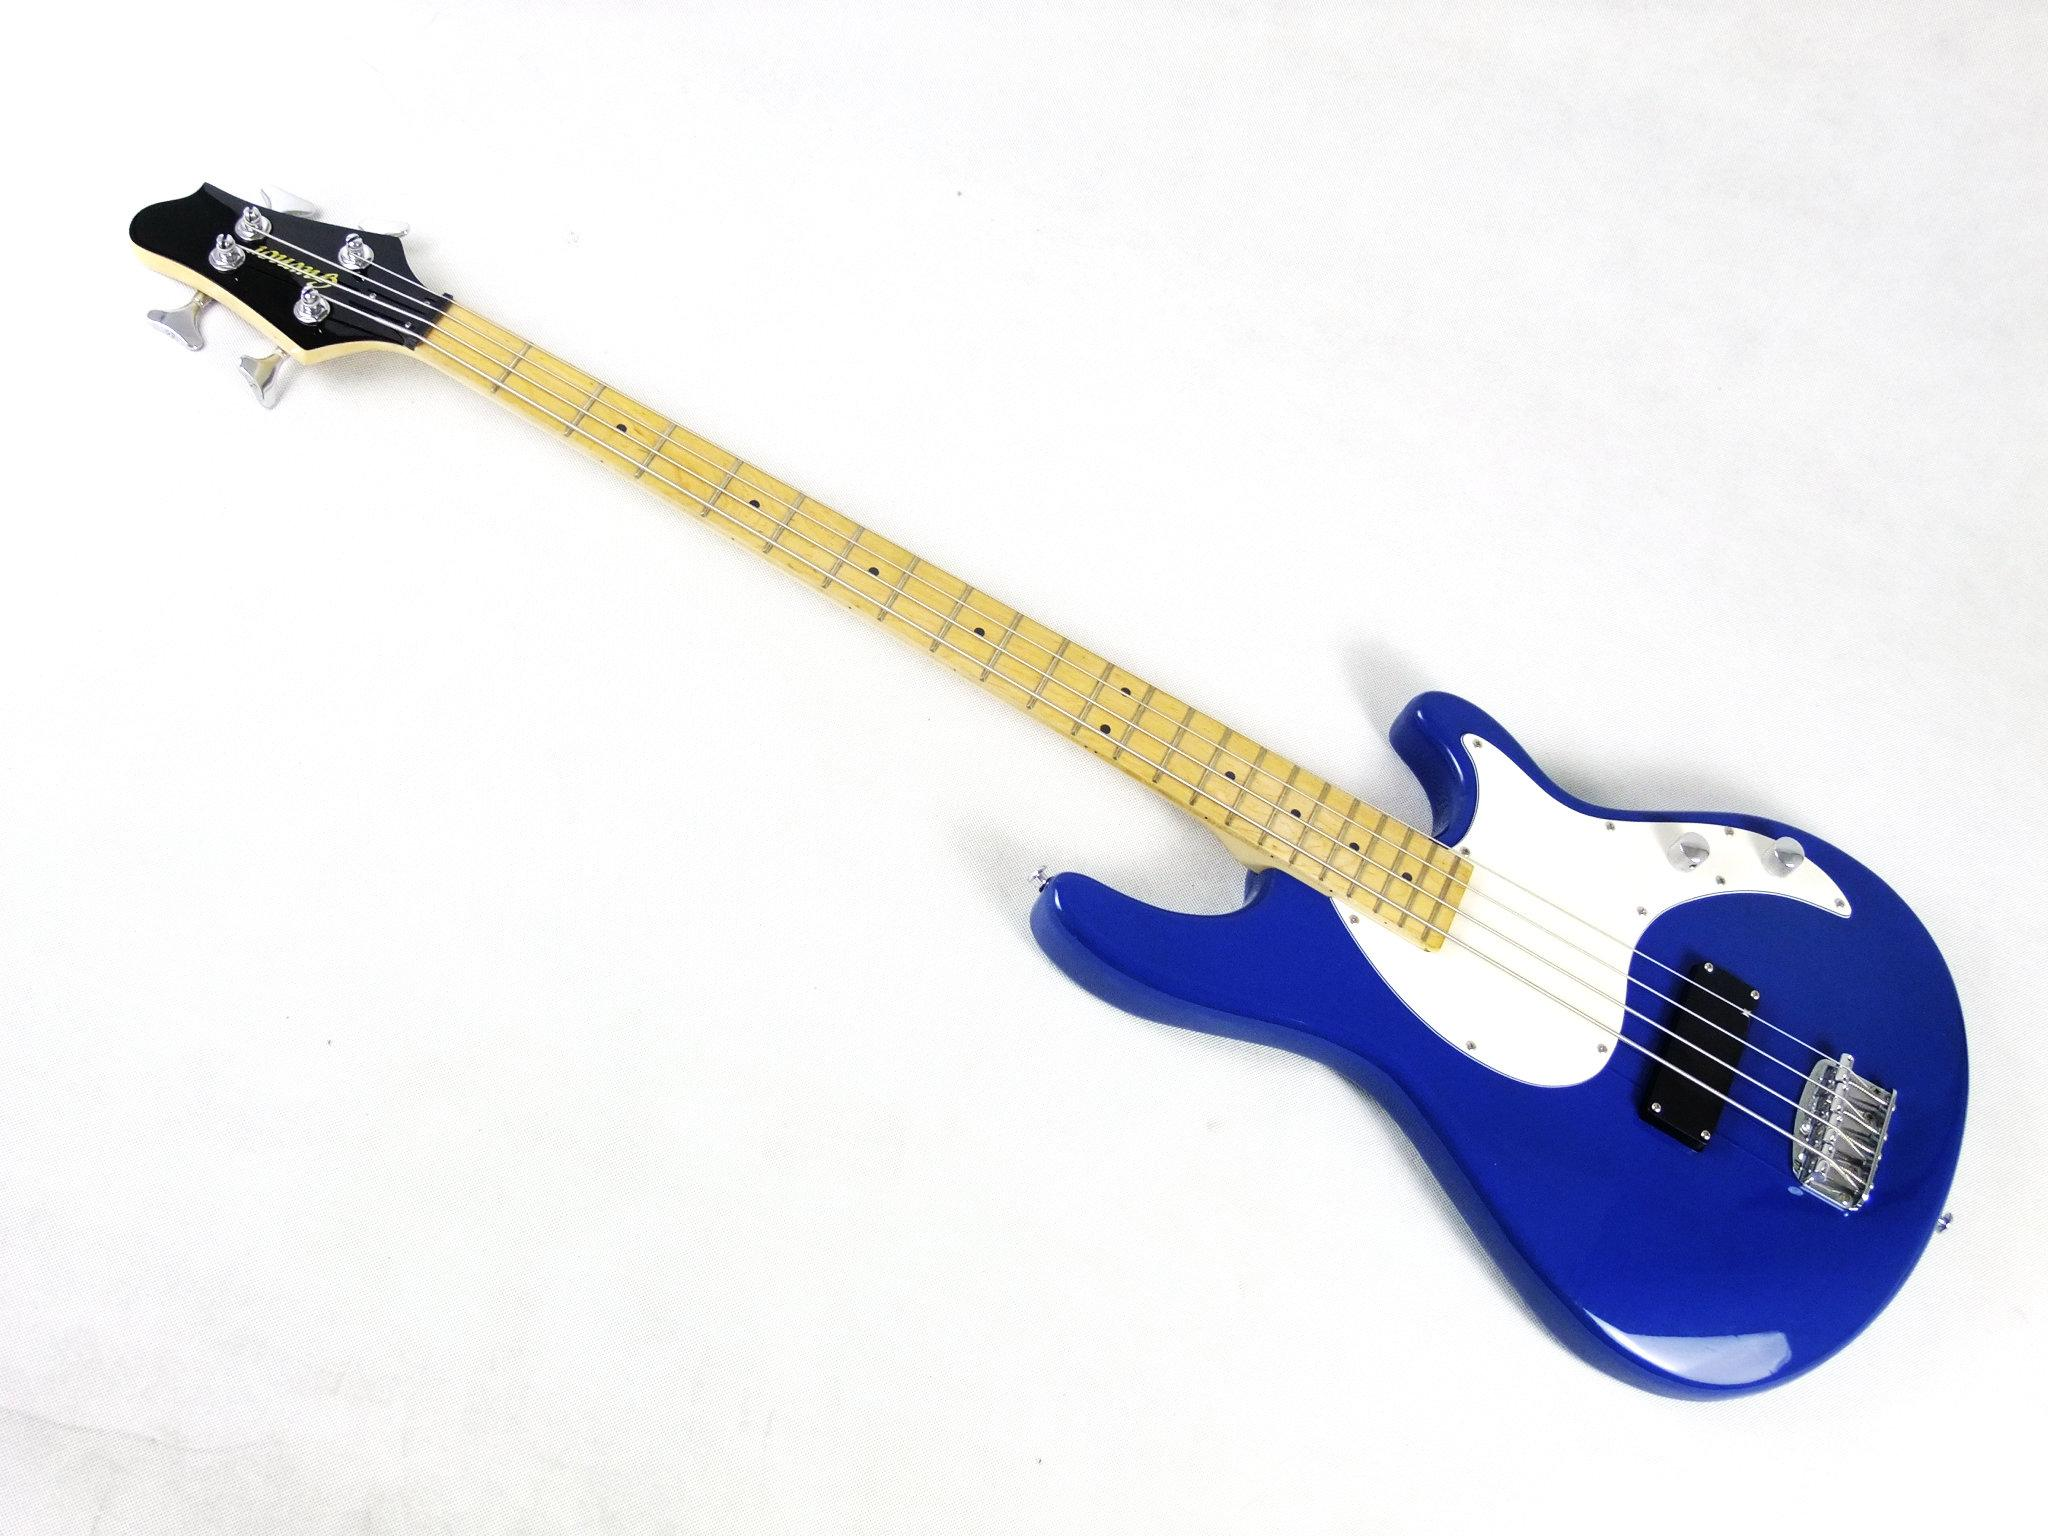 2020 Jingying Music Bass Guitars and Electric Guitars with Custom Brand 9